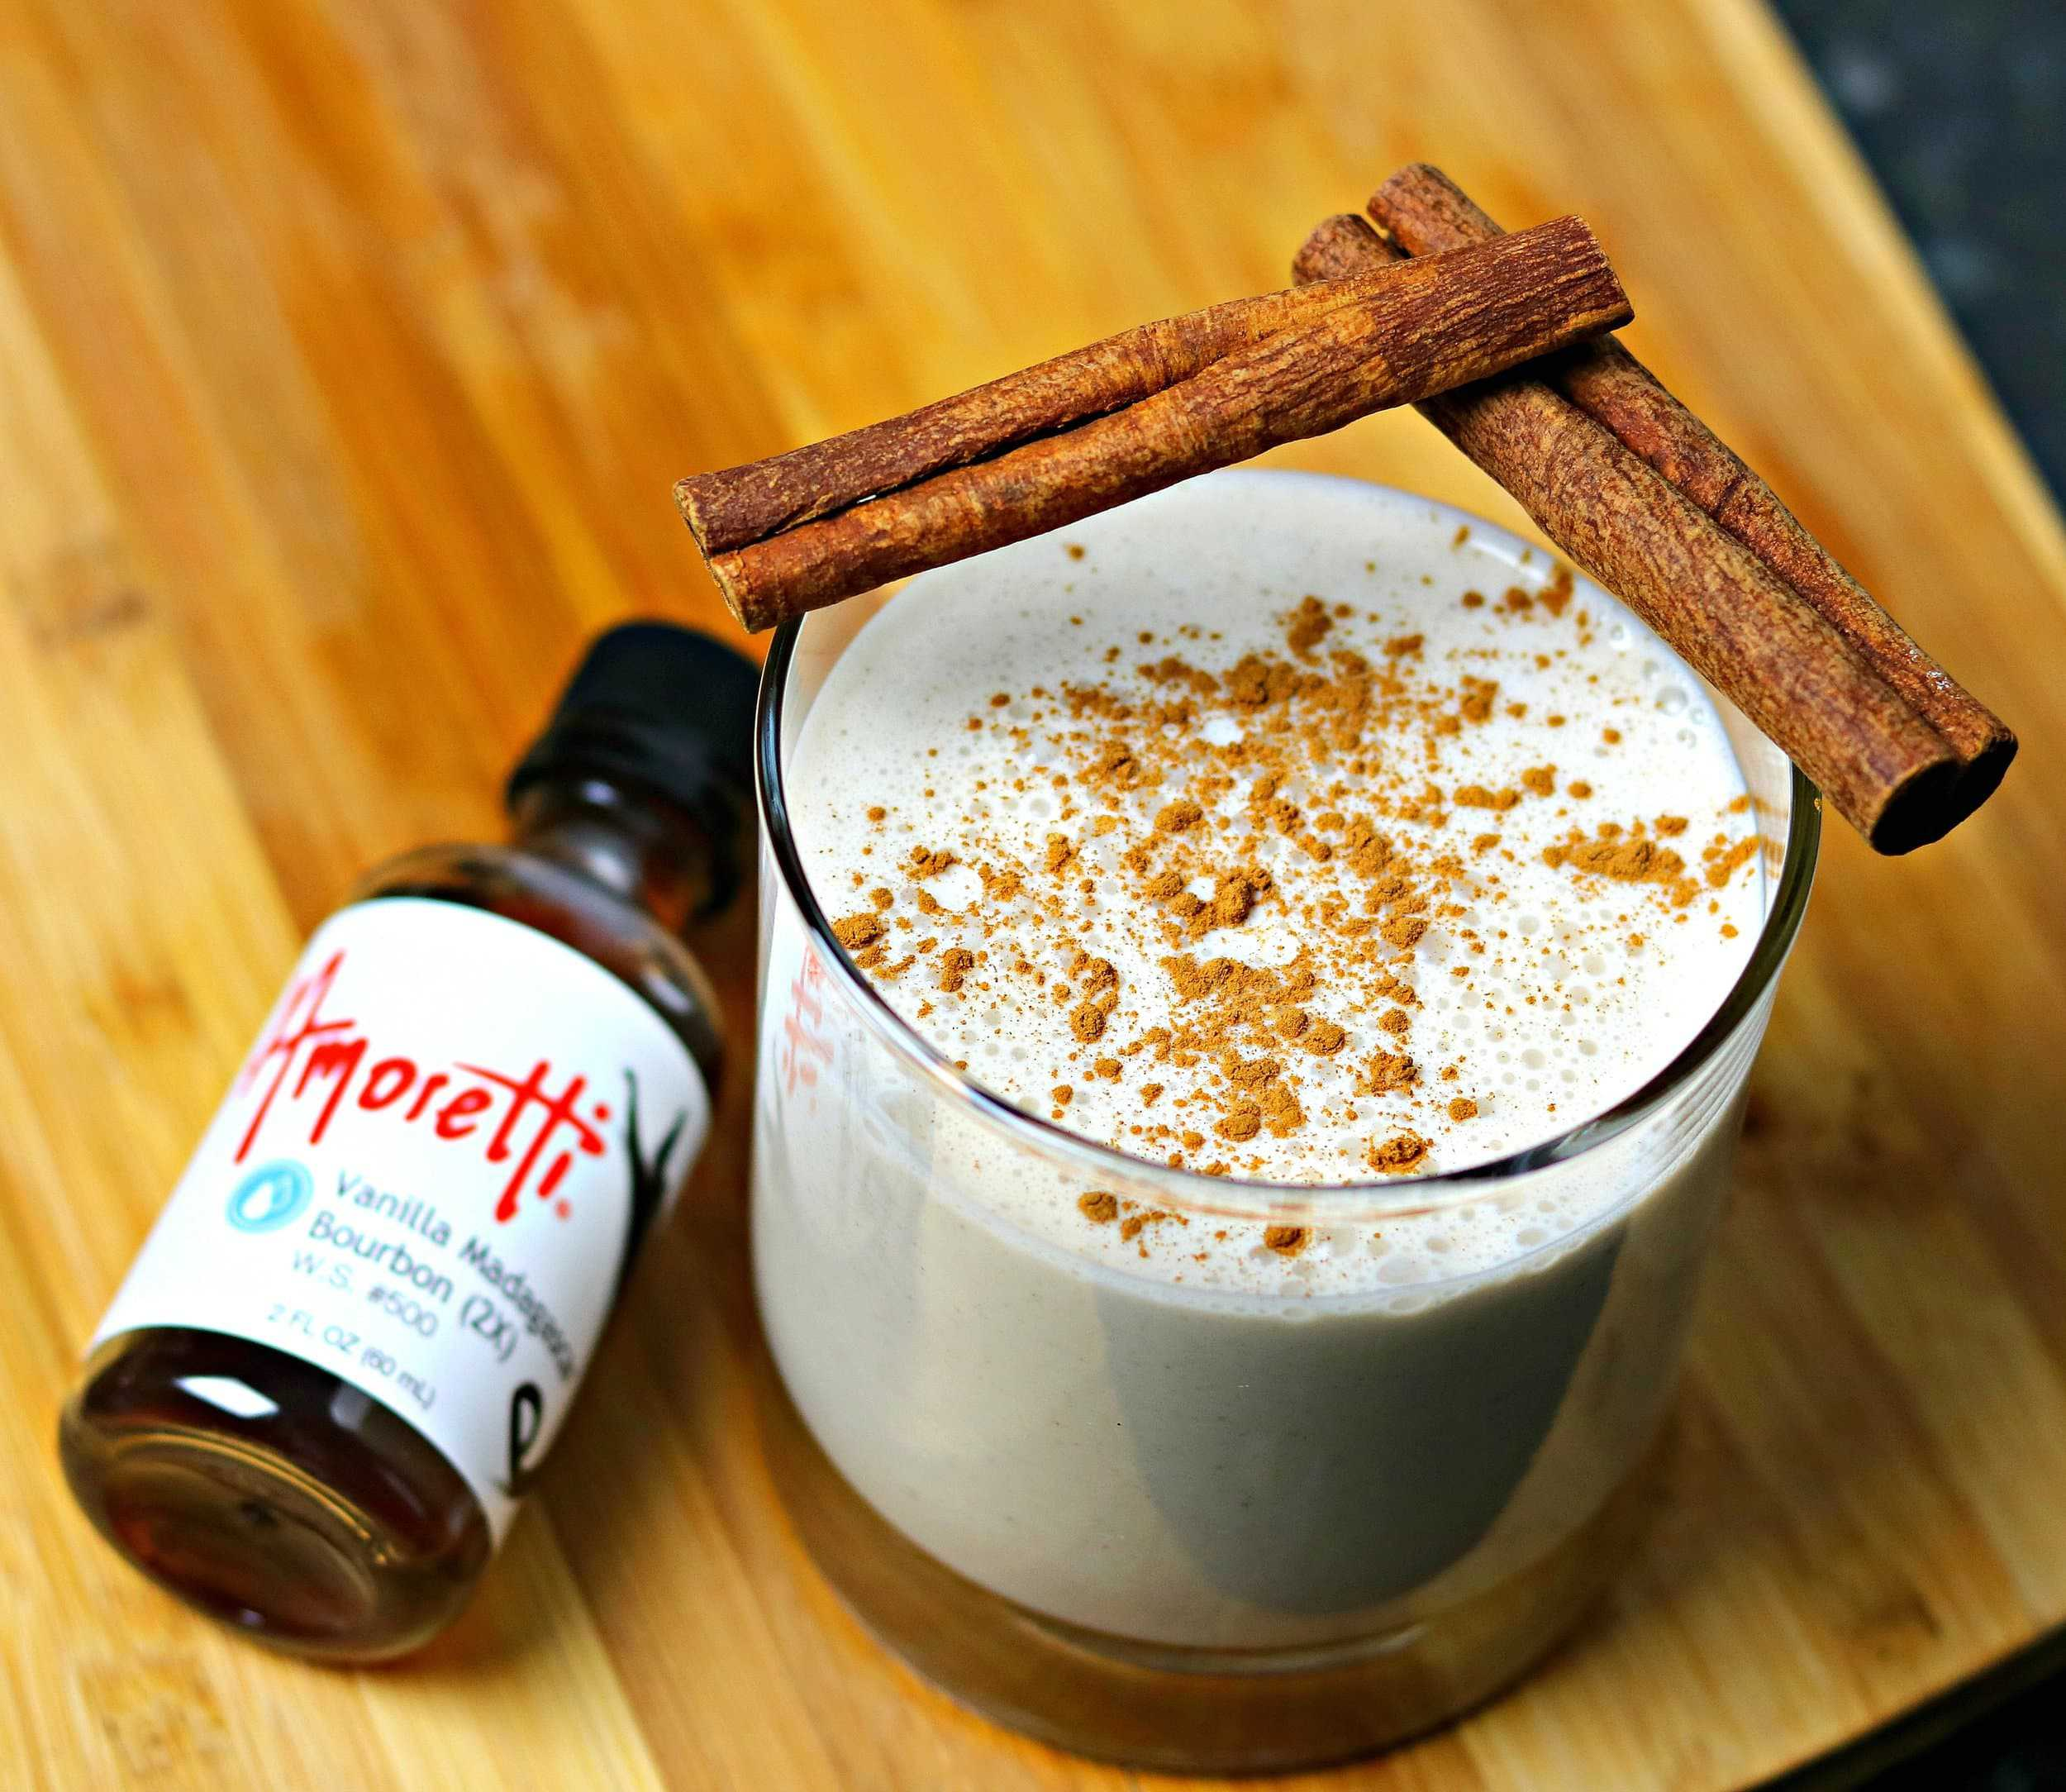 Keto Coquito with two cinnamon sticks next to Amoretti Vanilla